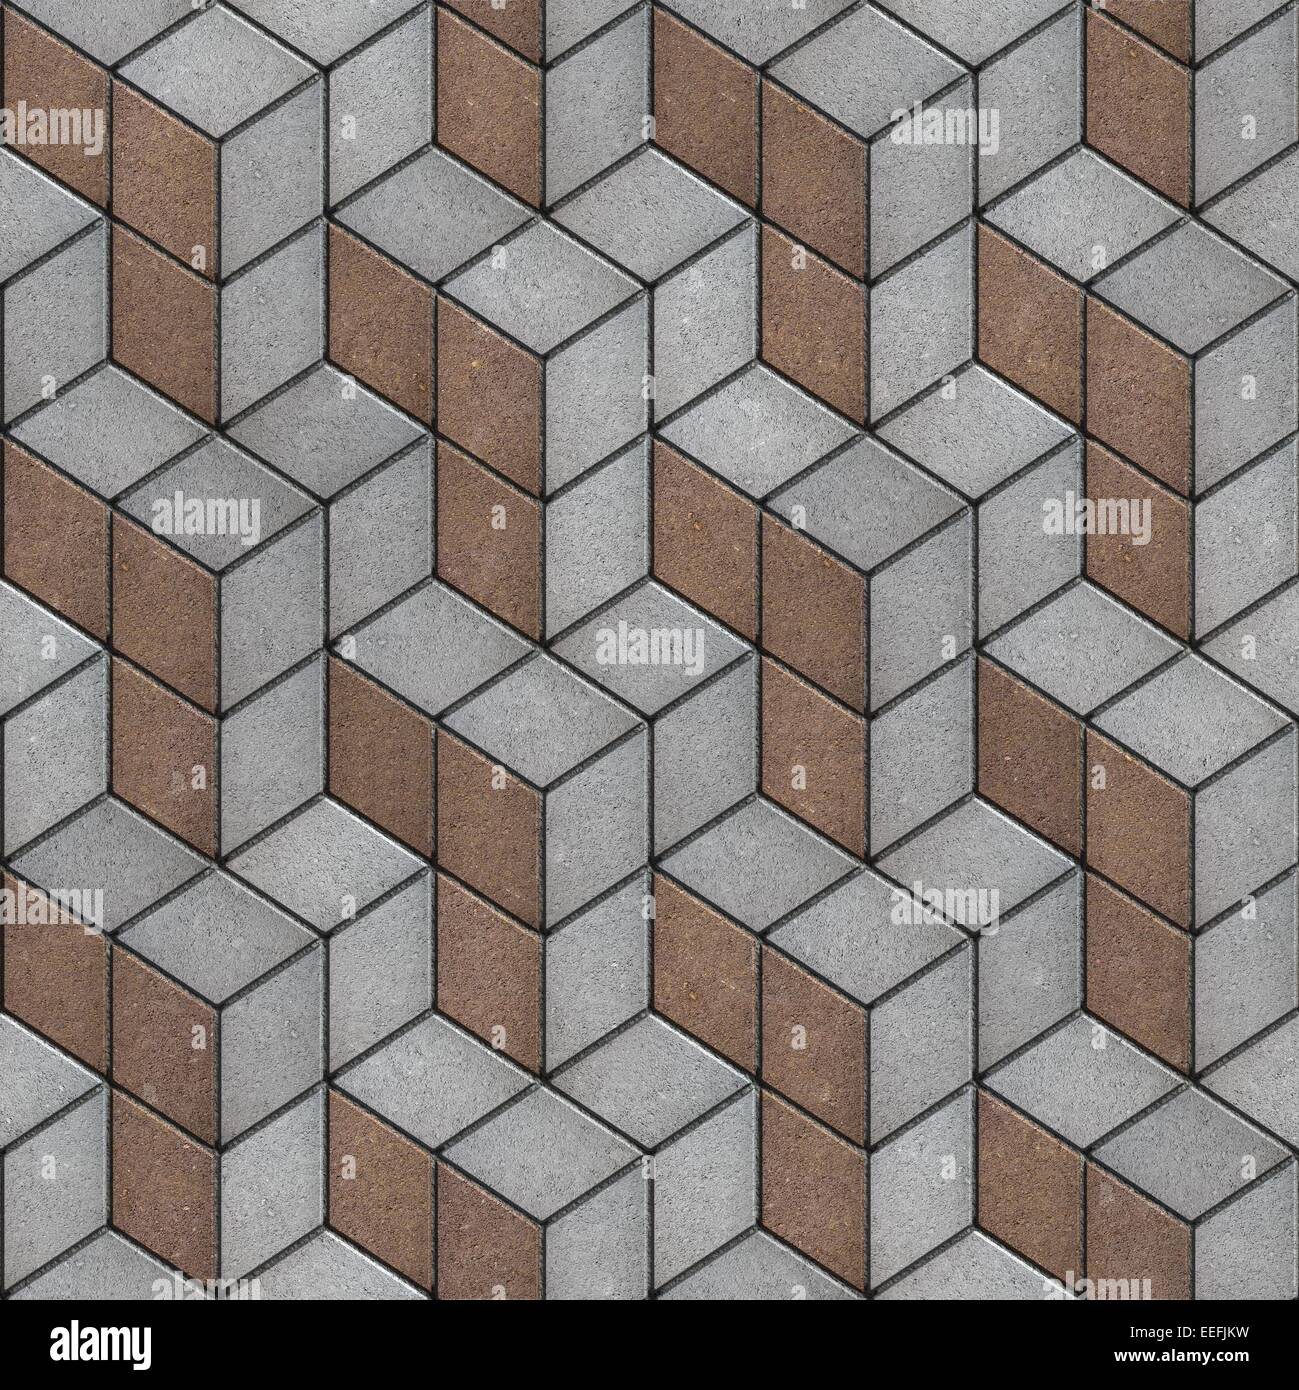 Pavement Of Brown And Gray Tiles Seamless Texture Stock Photo Alamy